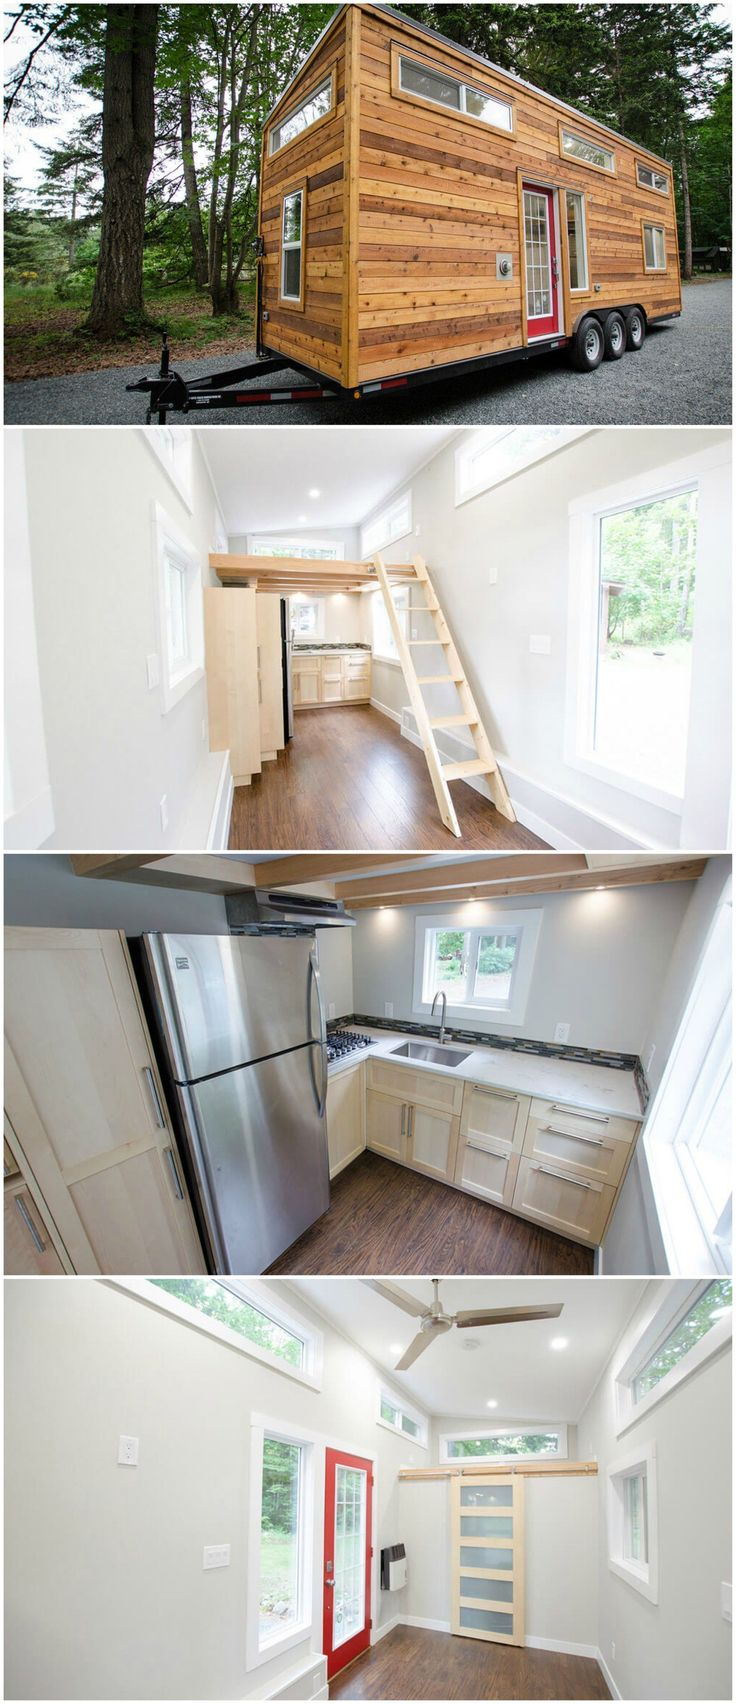 The Whisky Jack is an amazing tiny house built by Rewild Homes. The tiny house uses materials sourced from Vancouver Island and all of their homes are built using sustainable practices. They enjoy supporting local businesses to help the local economy and keep their footprint as small as possible. The kitchen has a full size refrigerator, five-burner stove and a nice pantry space. #tinyhomekitchenisland